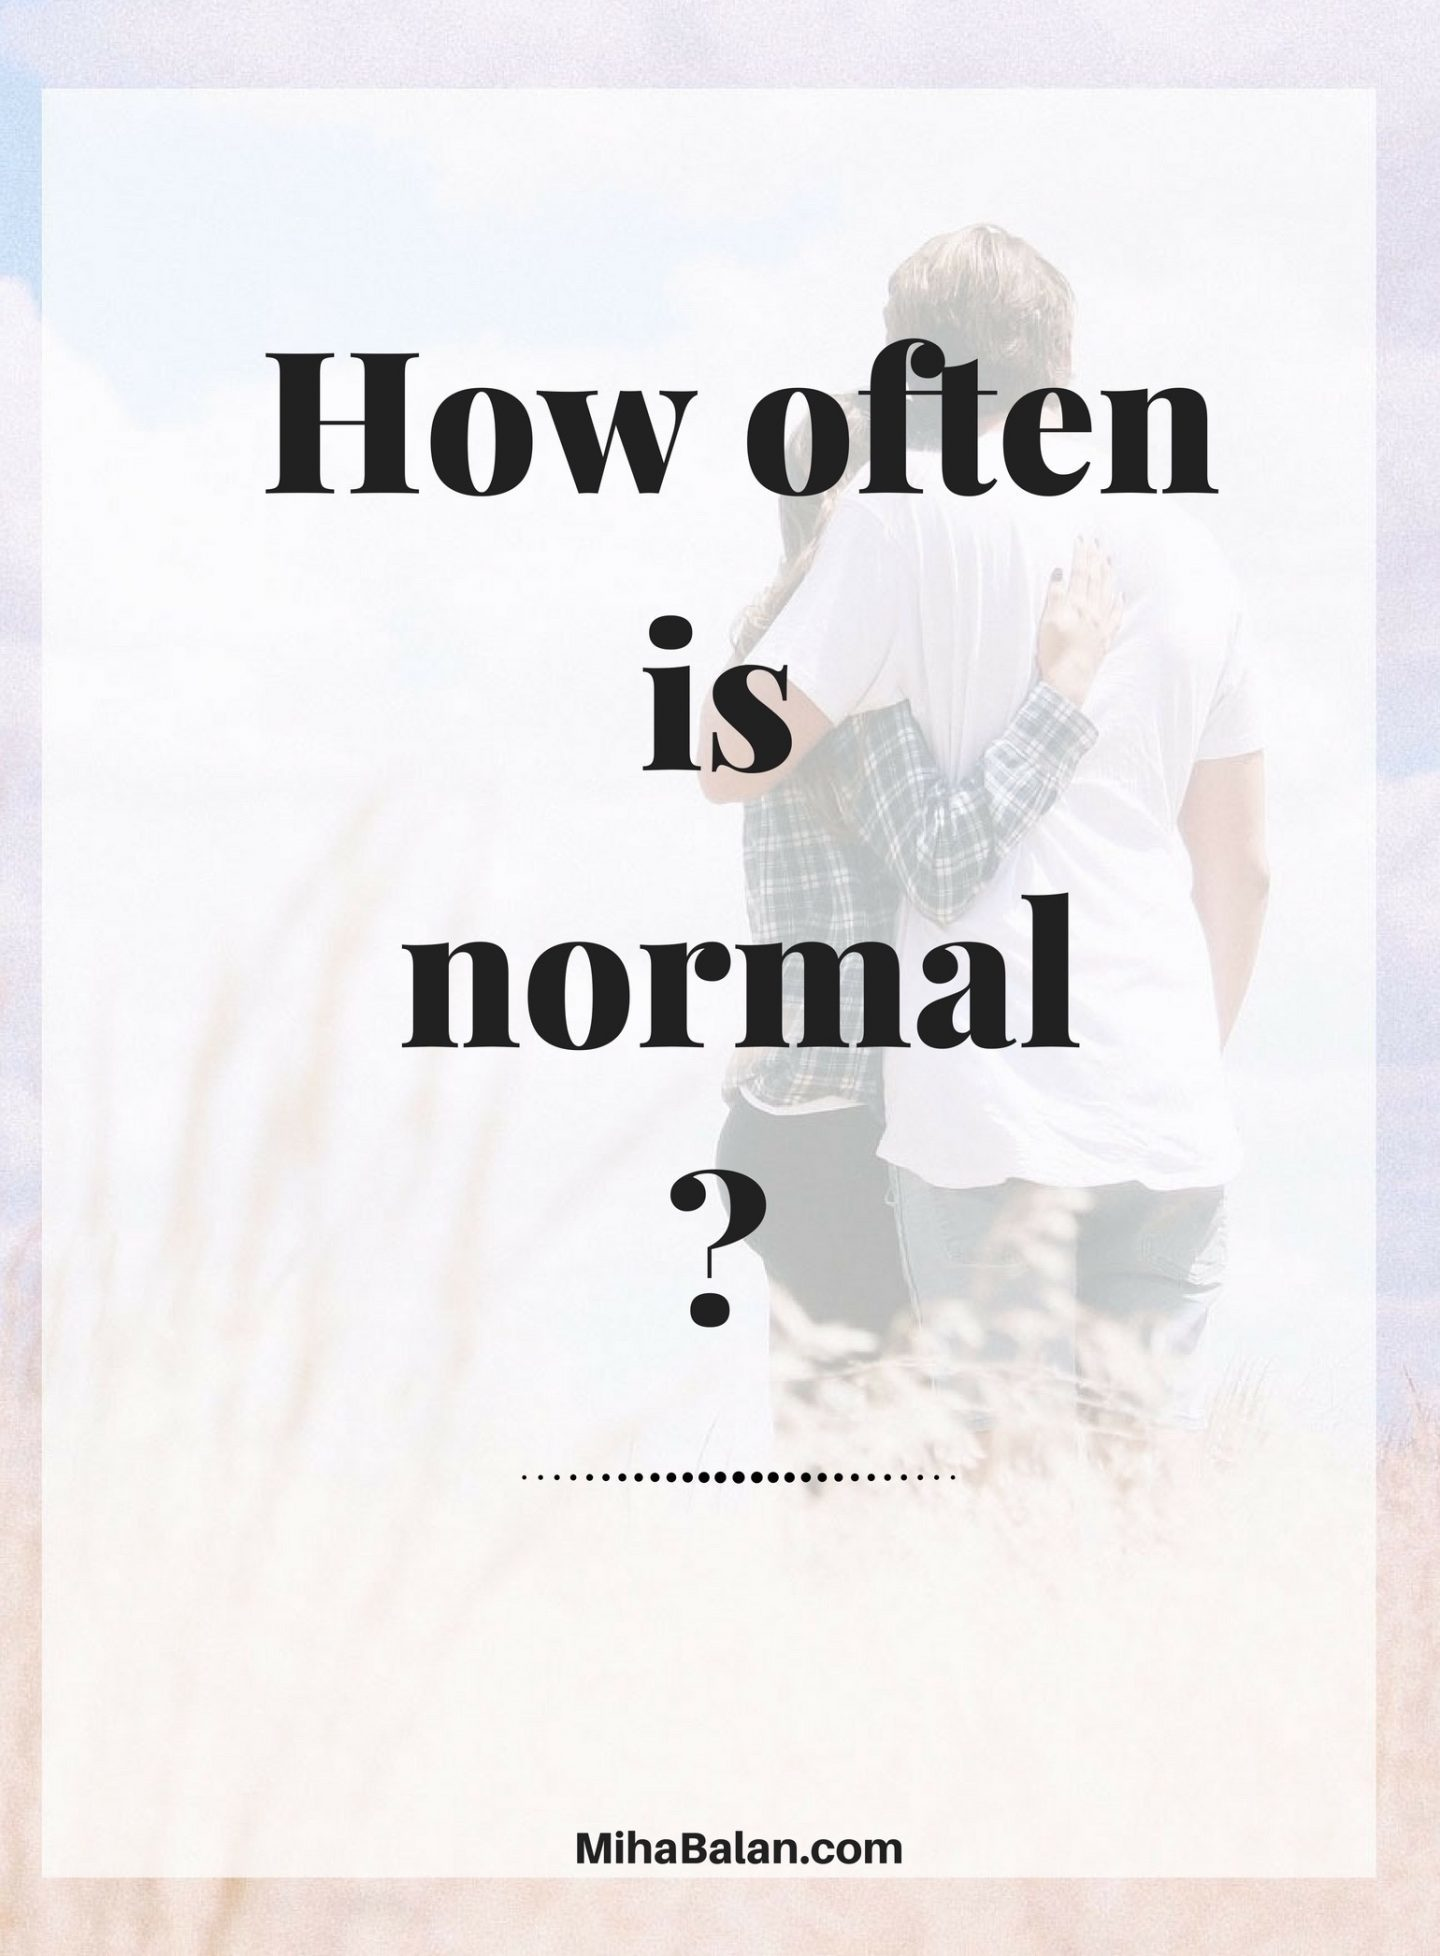 How often is normal?